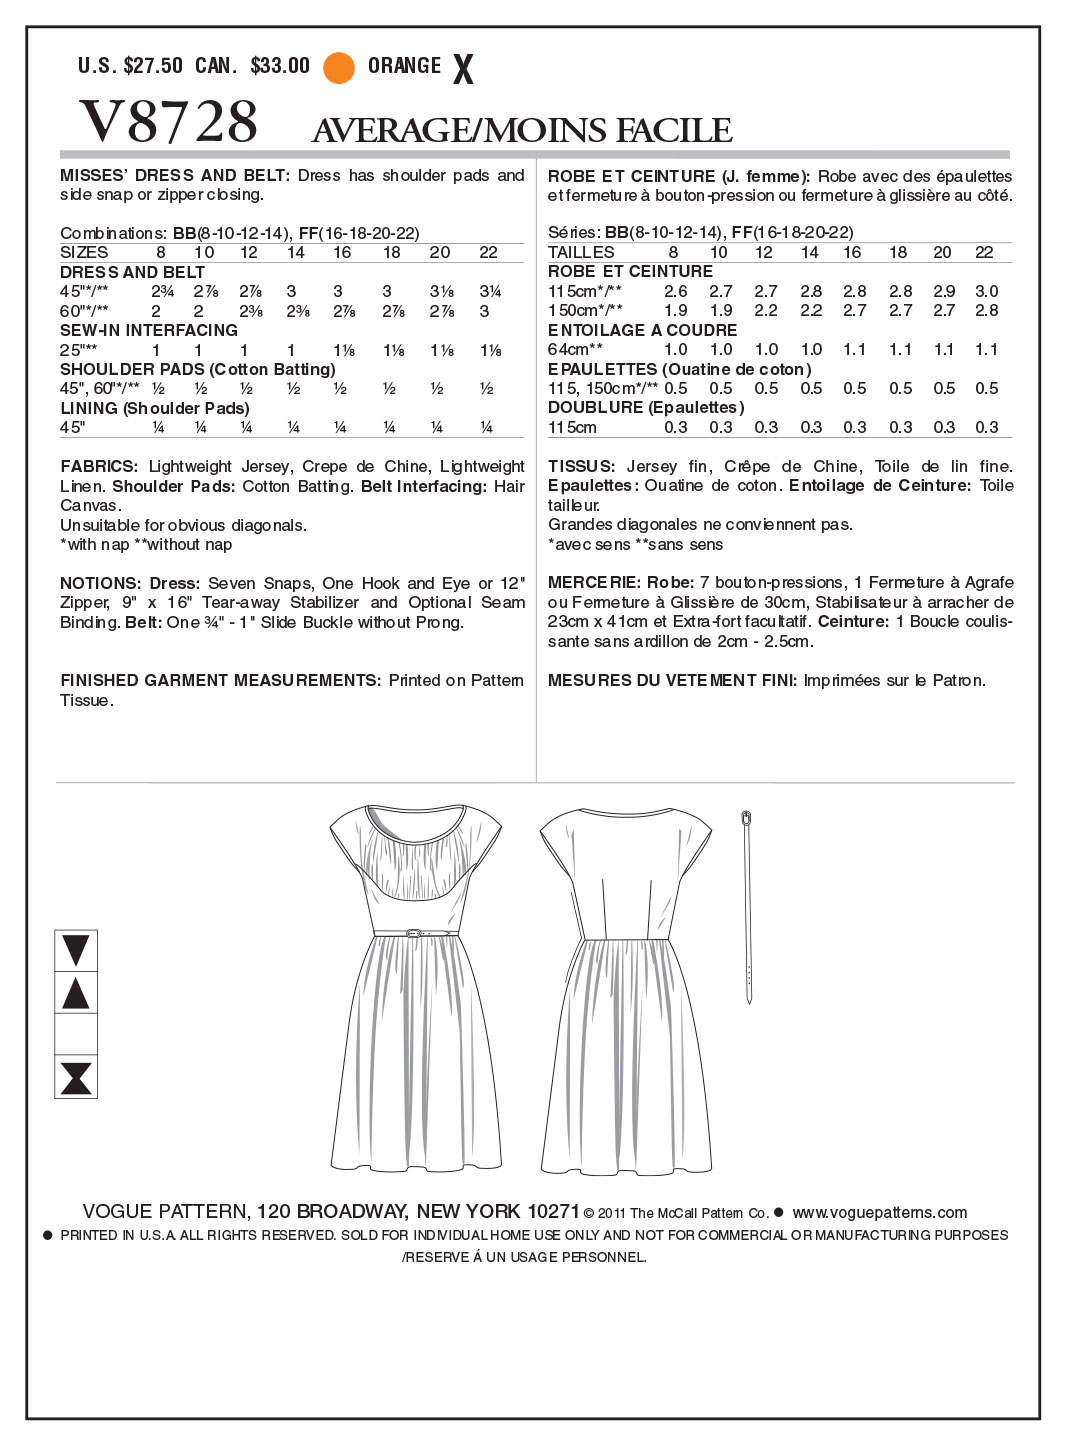 Vogue Patterns Misses Dress-V8728